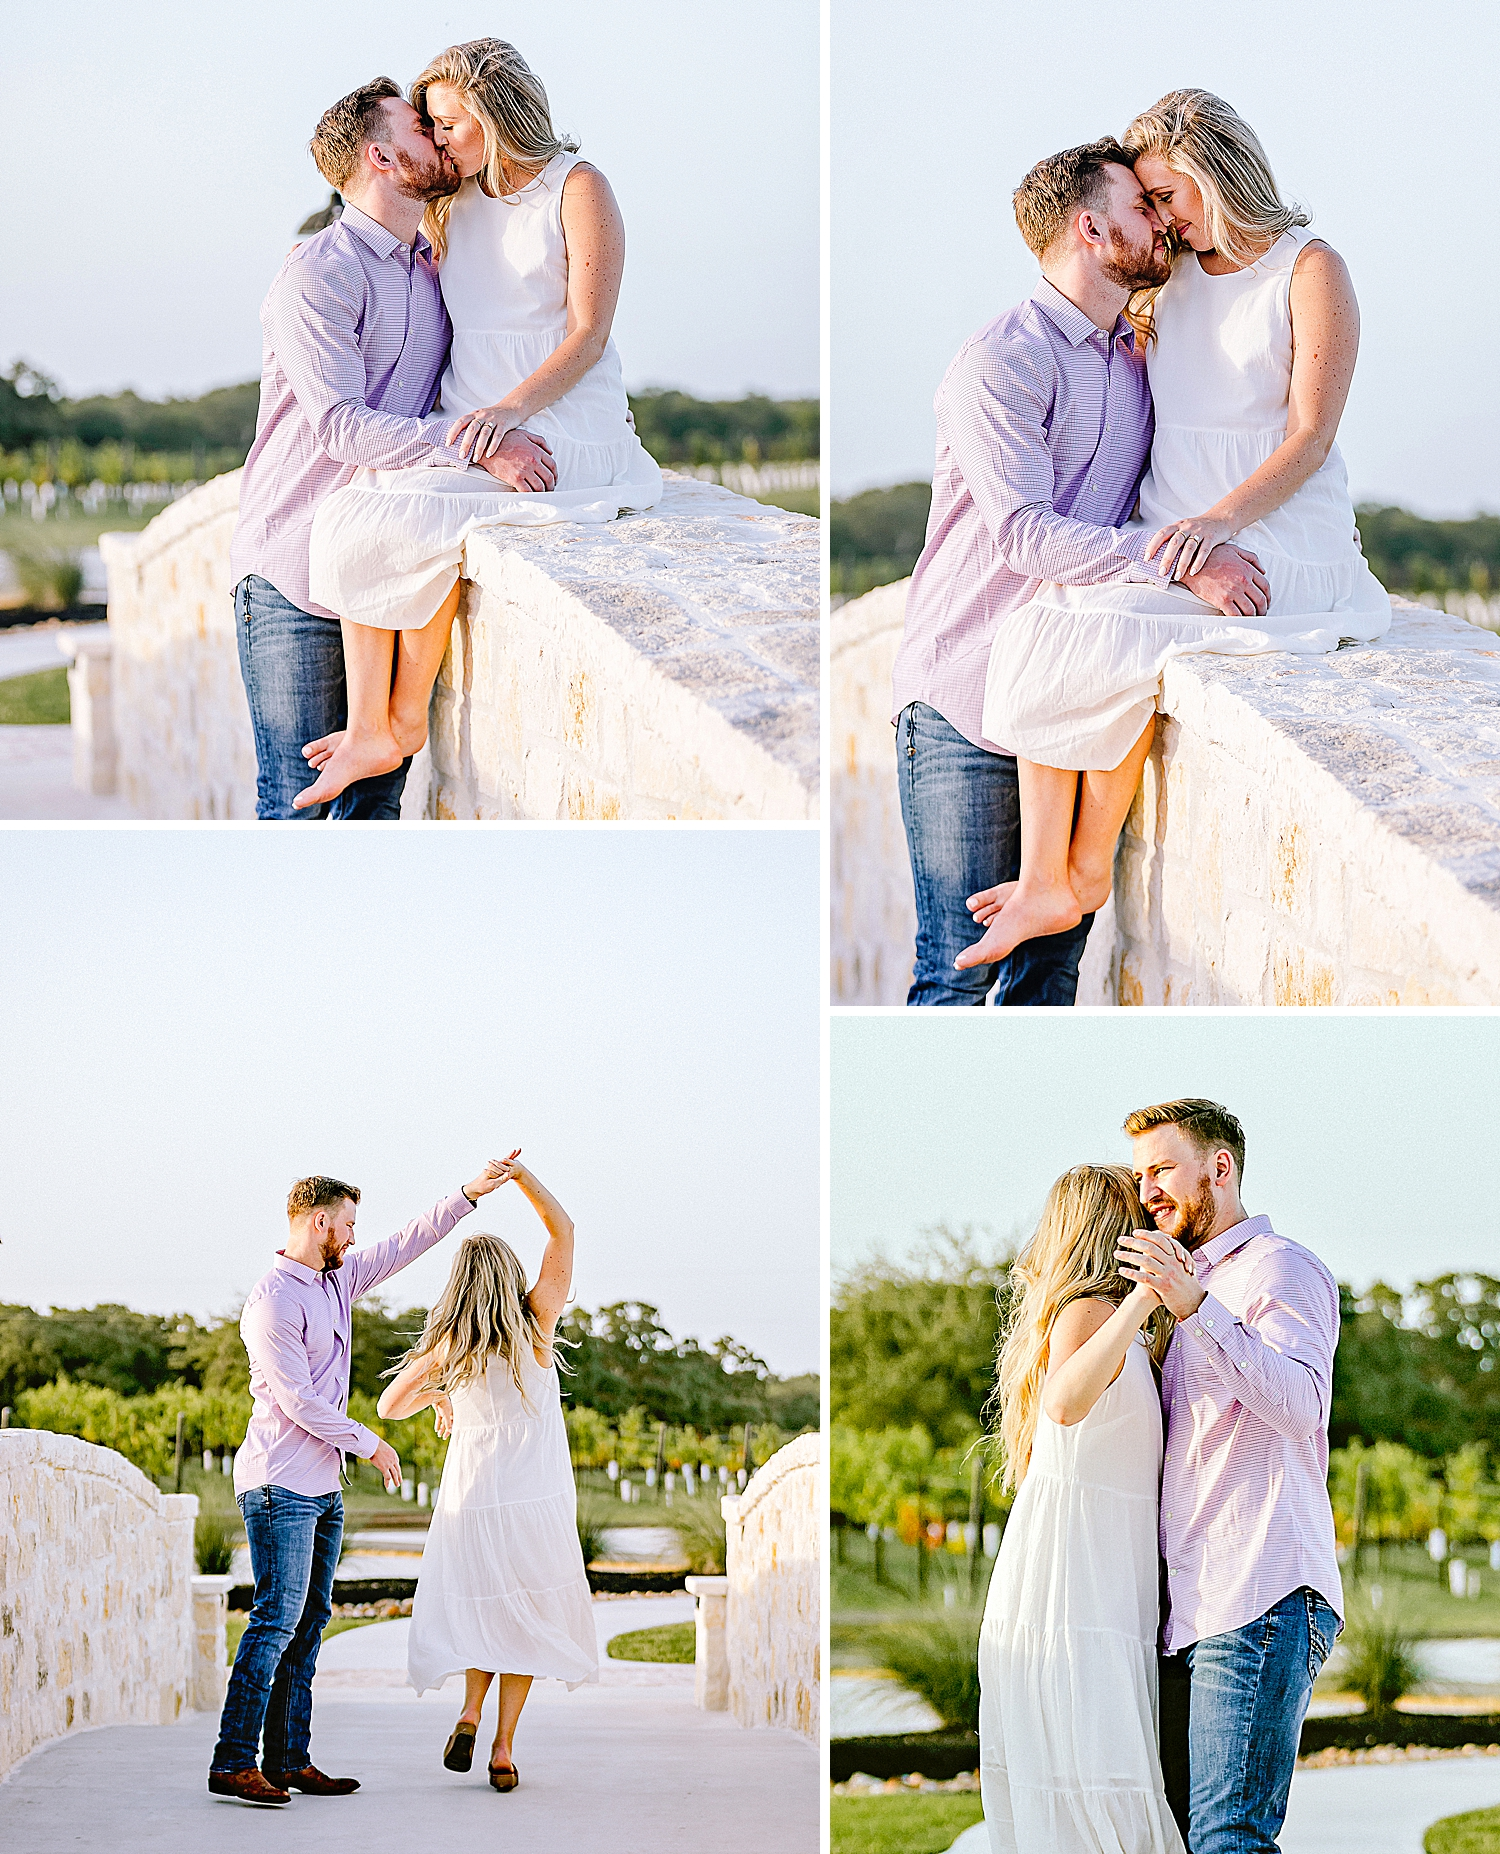 Carly-Barton-Photography-Engagement-Photos-College-Station-Texas-The-Weinberg-at-Wixon-Valley_0002.jpg